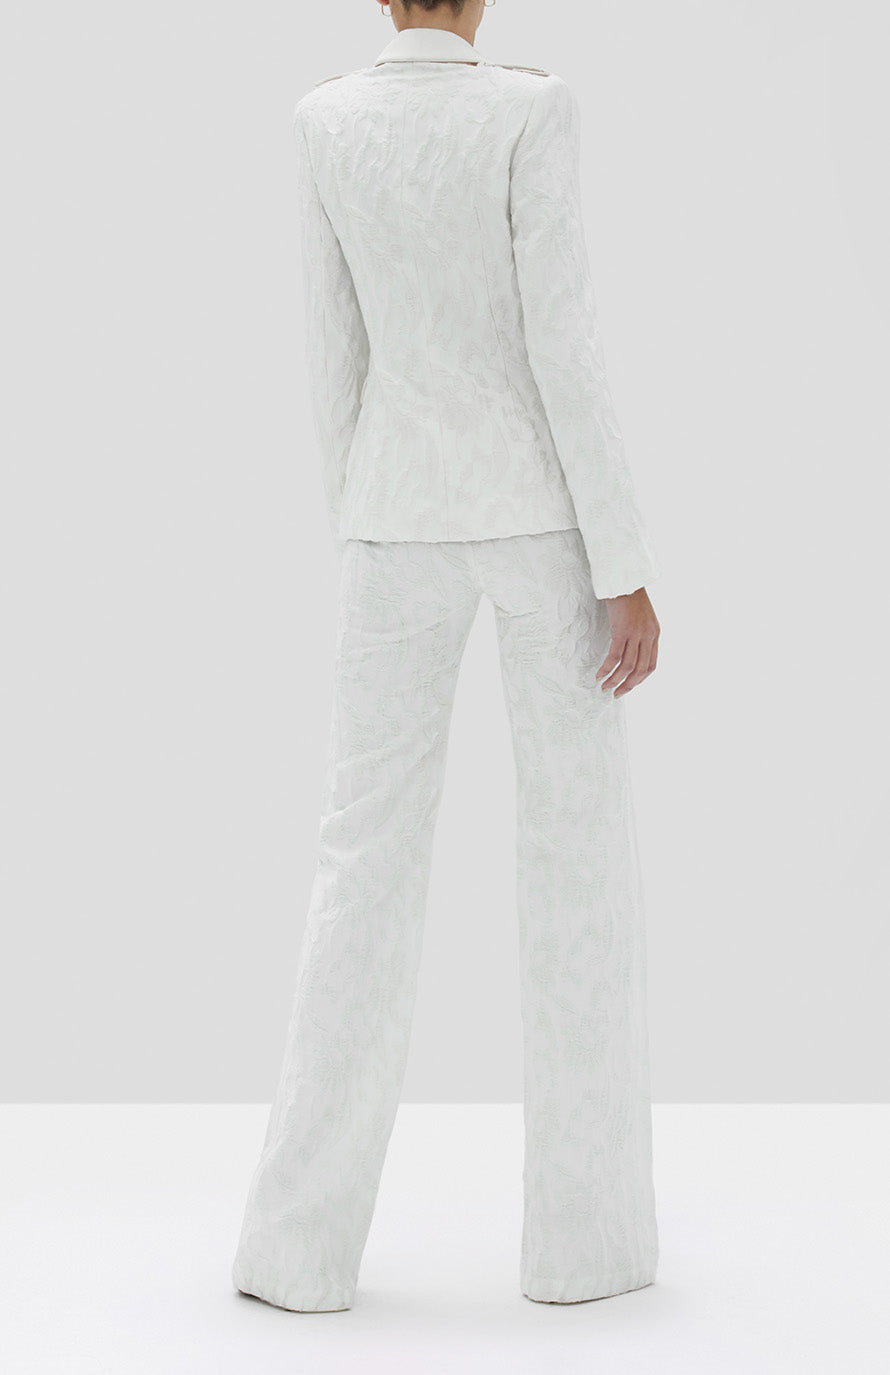 claudya jacket and bouras pant white floral jacquard - Rear View